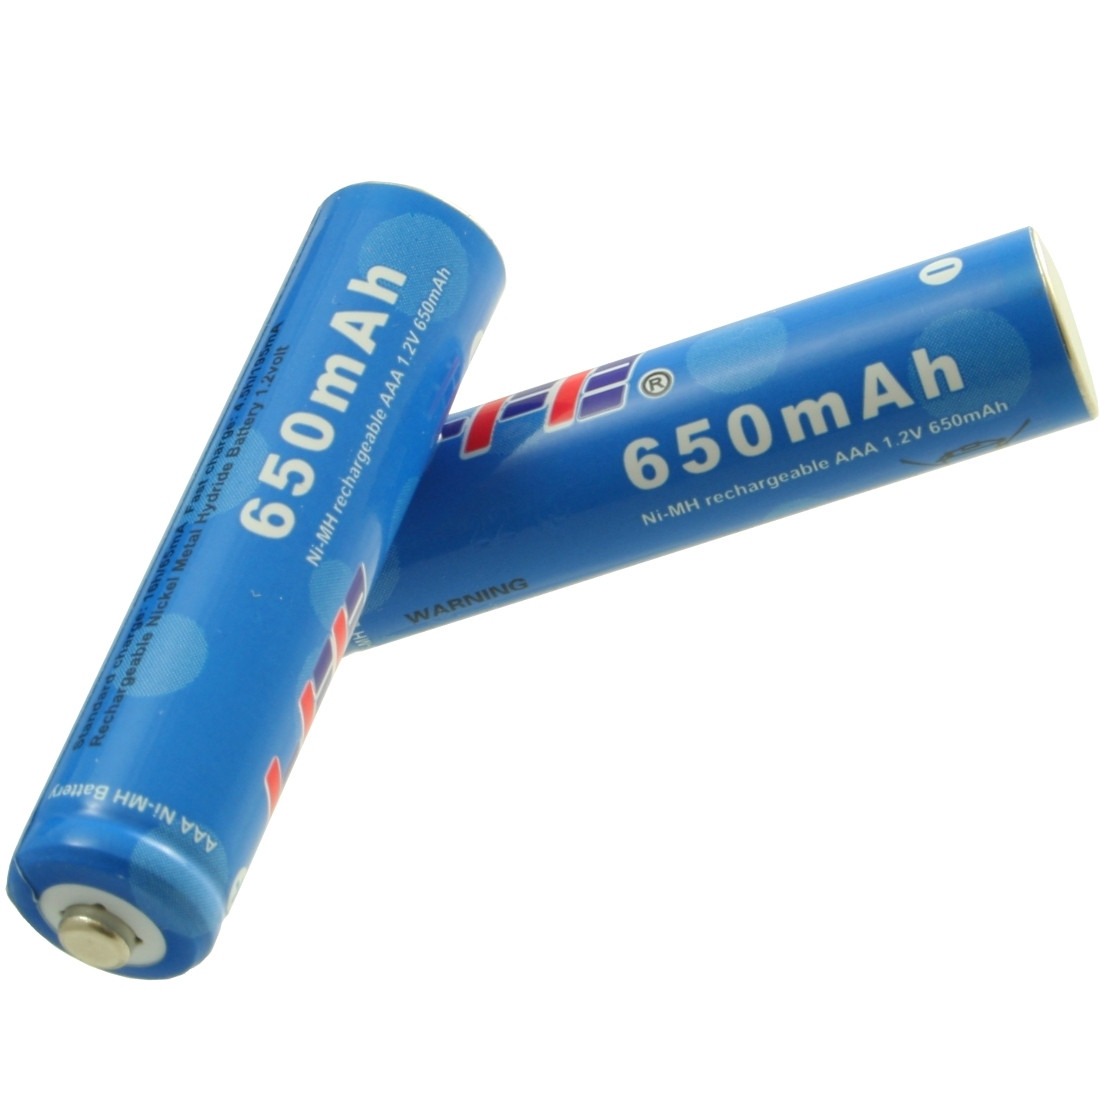 Original Batteries NIMH 650mAH (2 pc.) for Gigaset